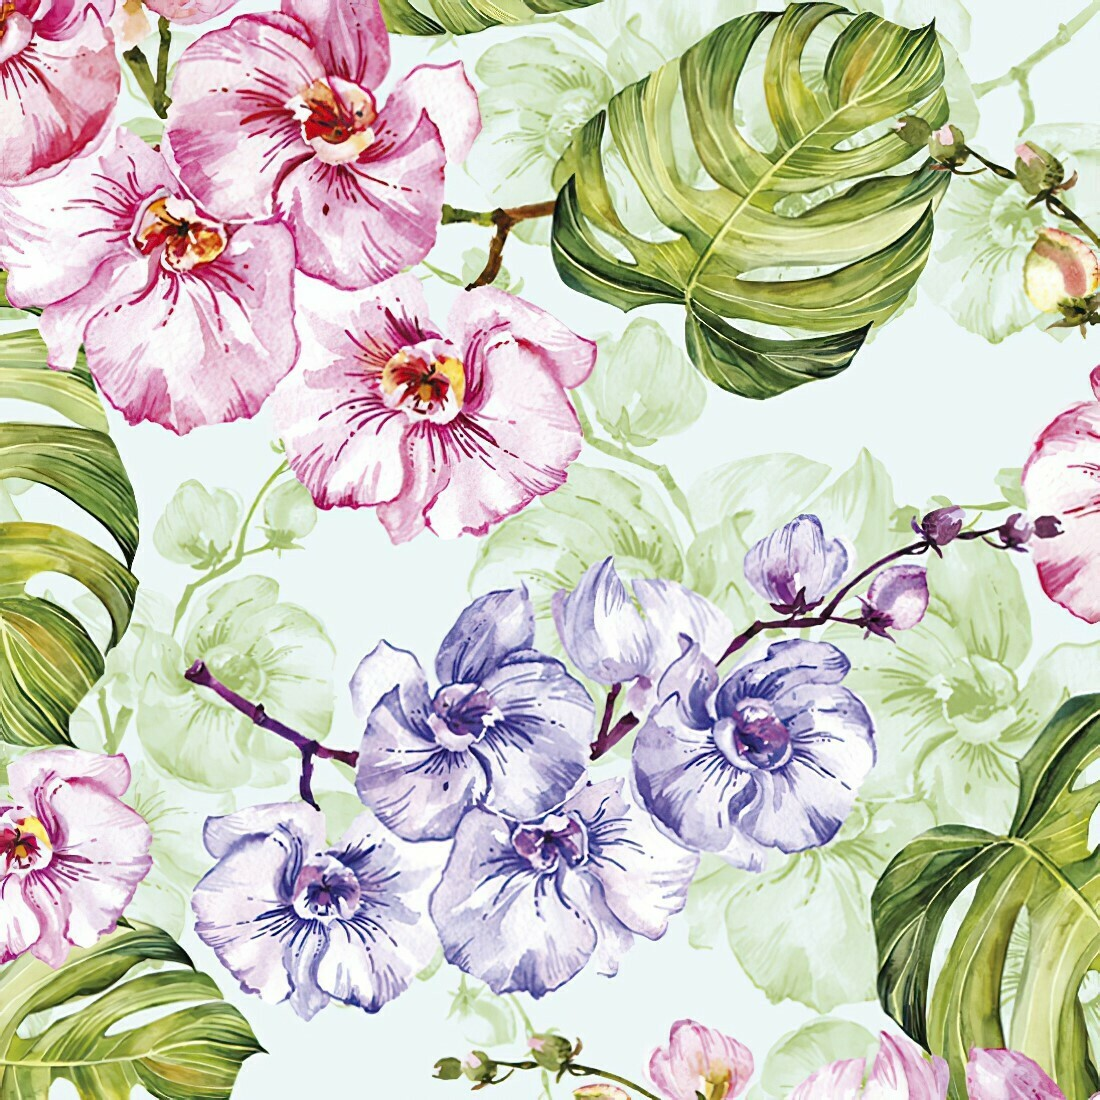 Decoupage Paper Napkins - Floral - Wild Orchid w/ Monstera (1 Sheet)